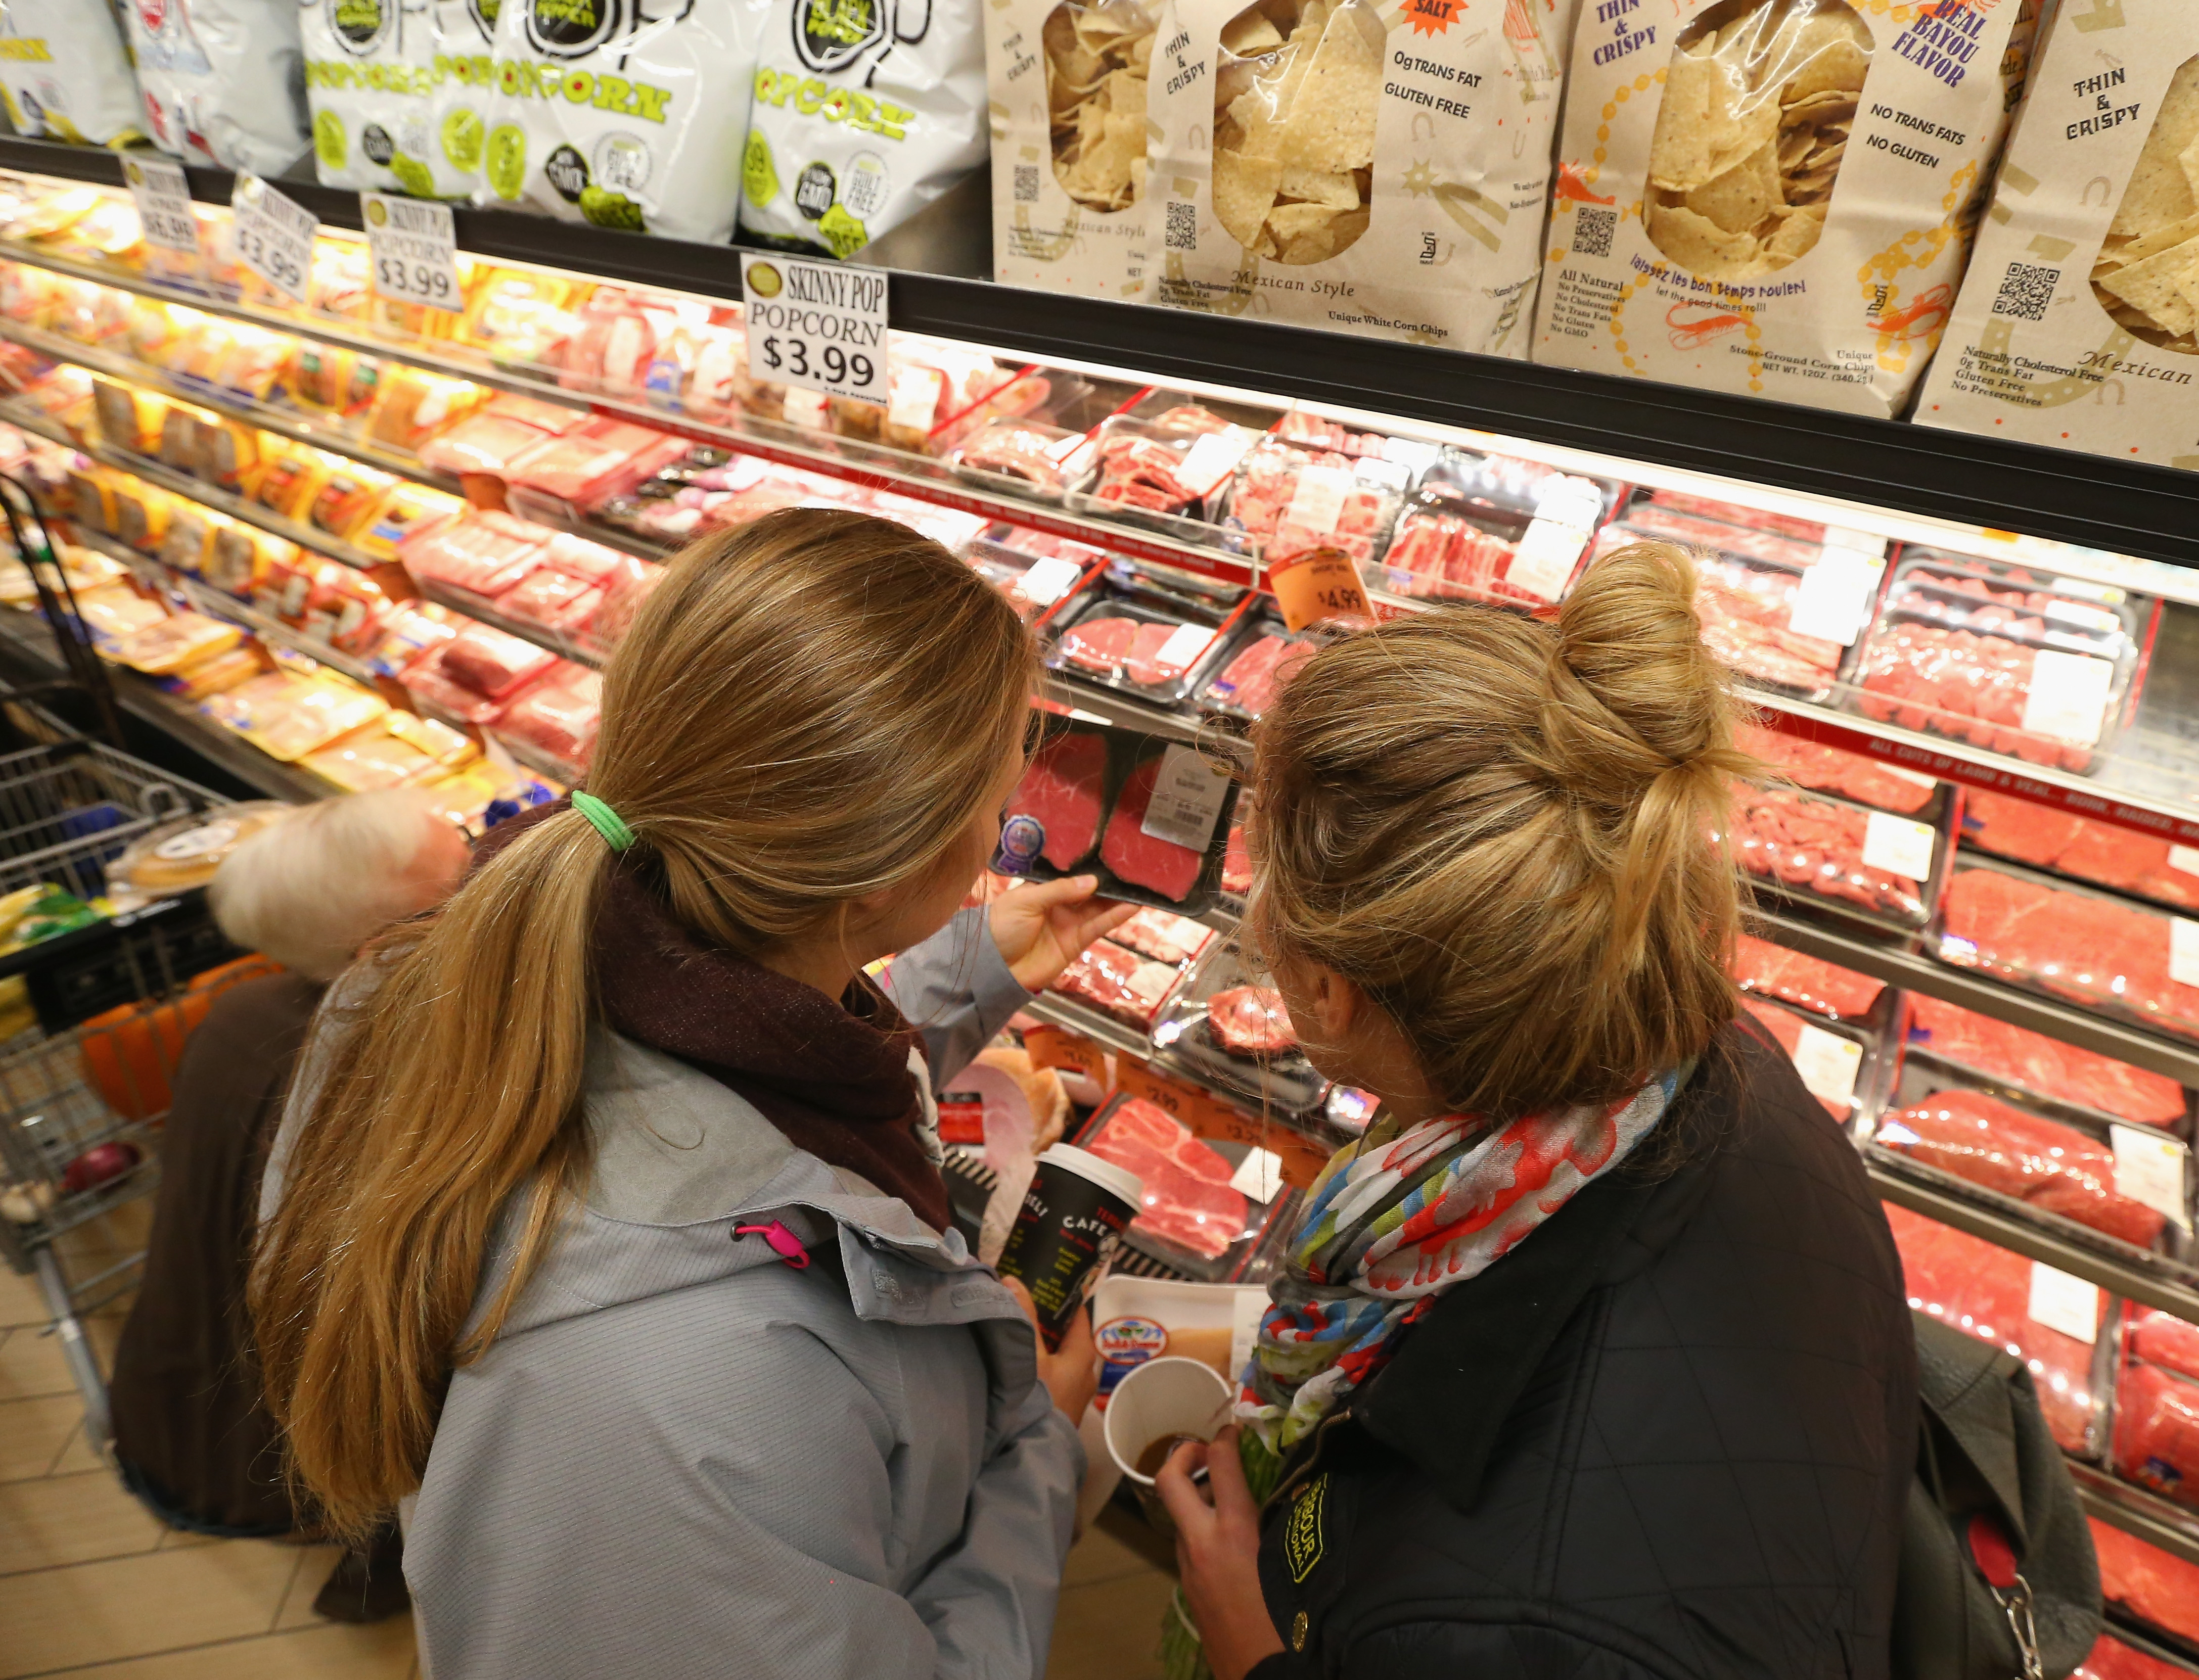 Yes, this is Kiira Dosdall and Janine Weber buying meat at a grocery store.